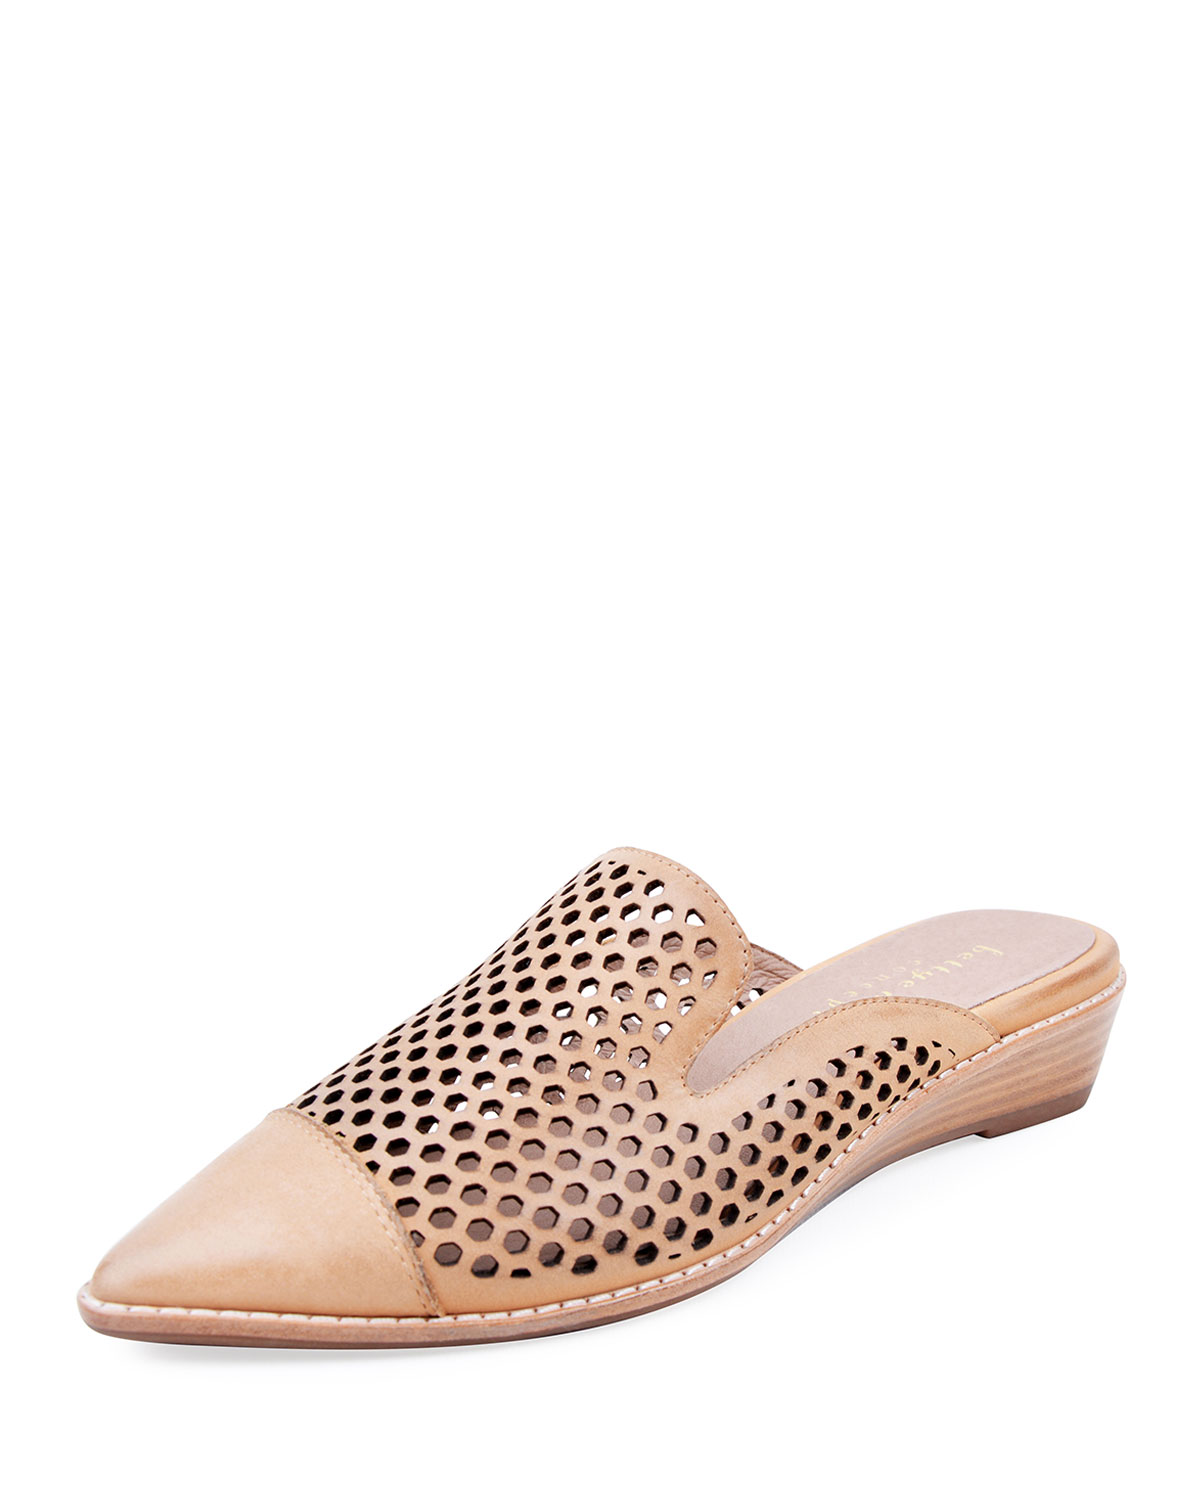 Cara Perforated Leather Mules, Beige